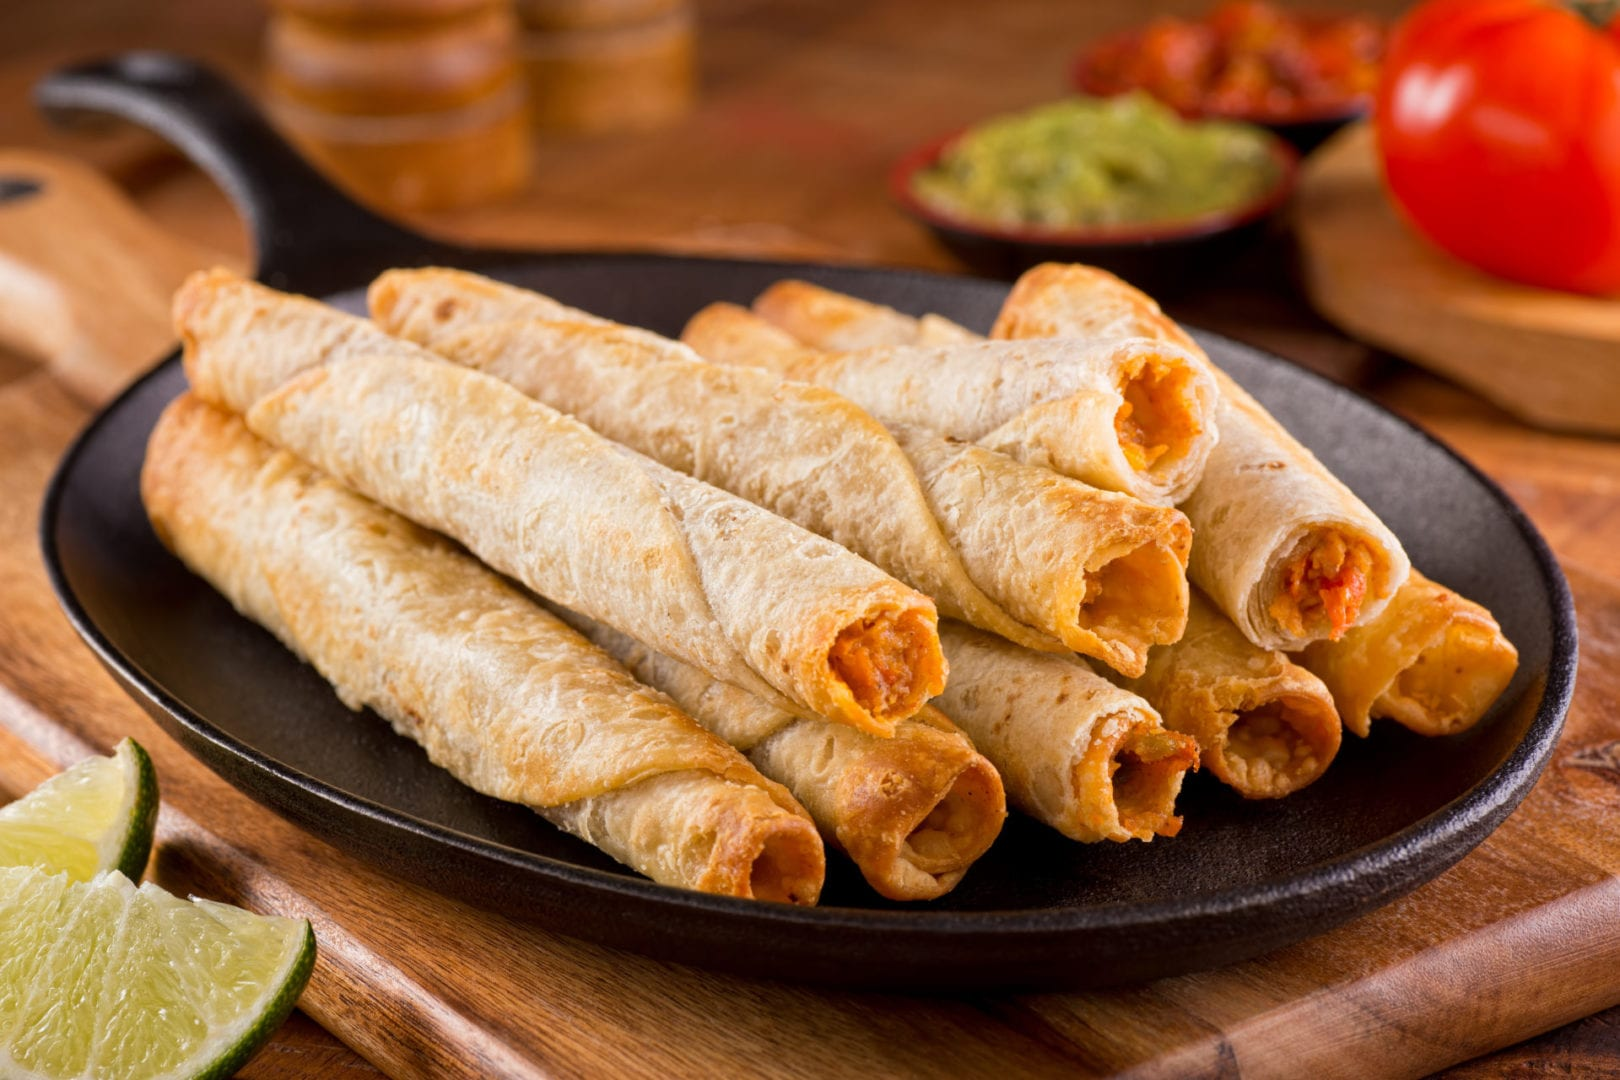 Keto Taquitos from the Air Fryer